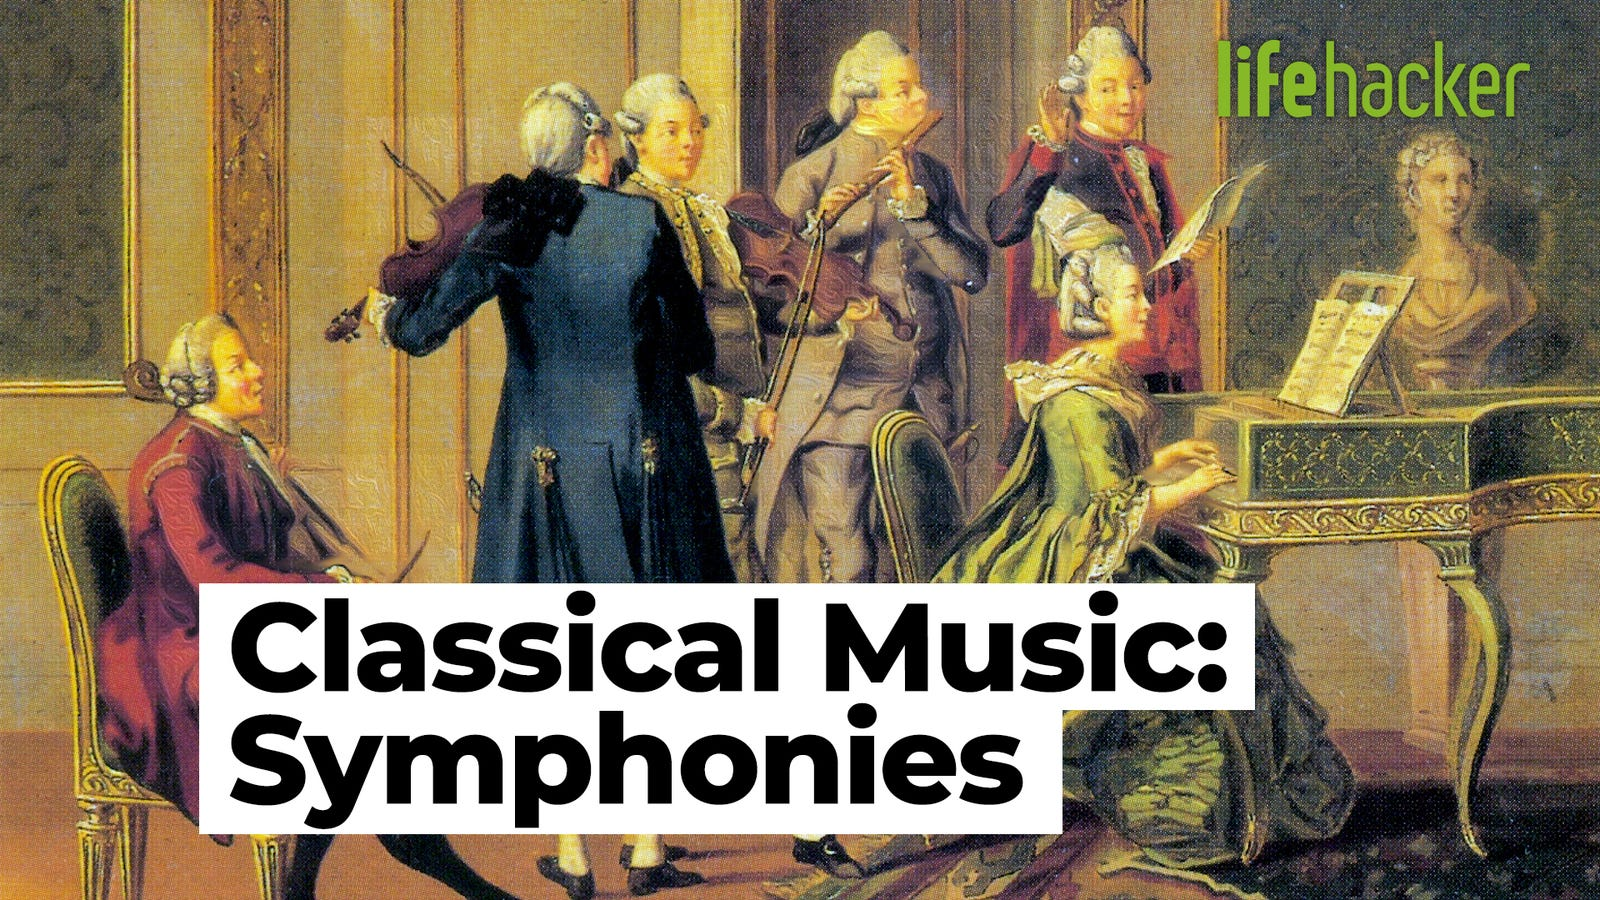 How to Really Appreciate Classical Music